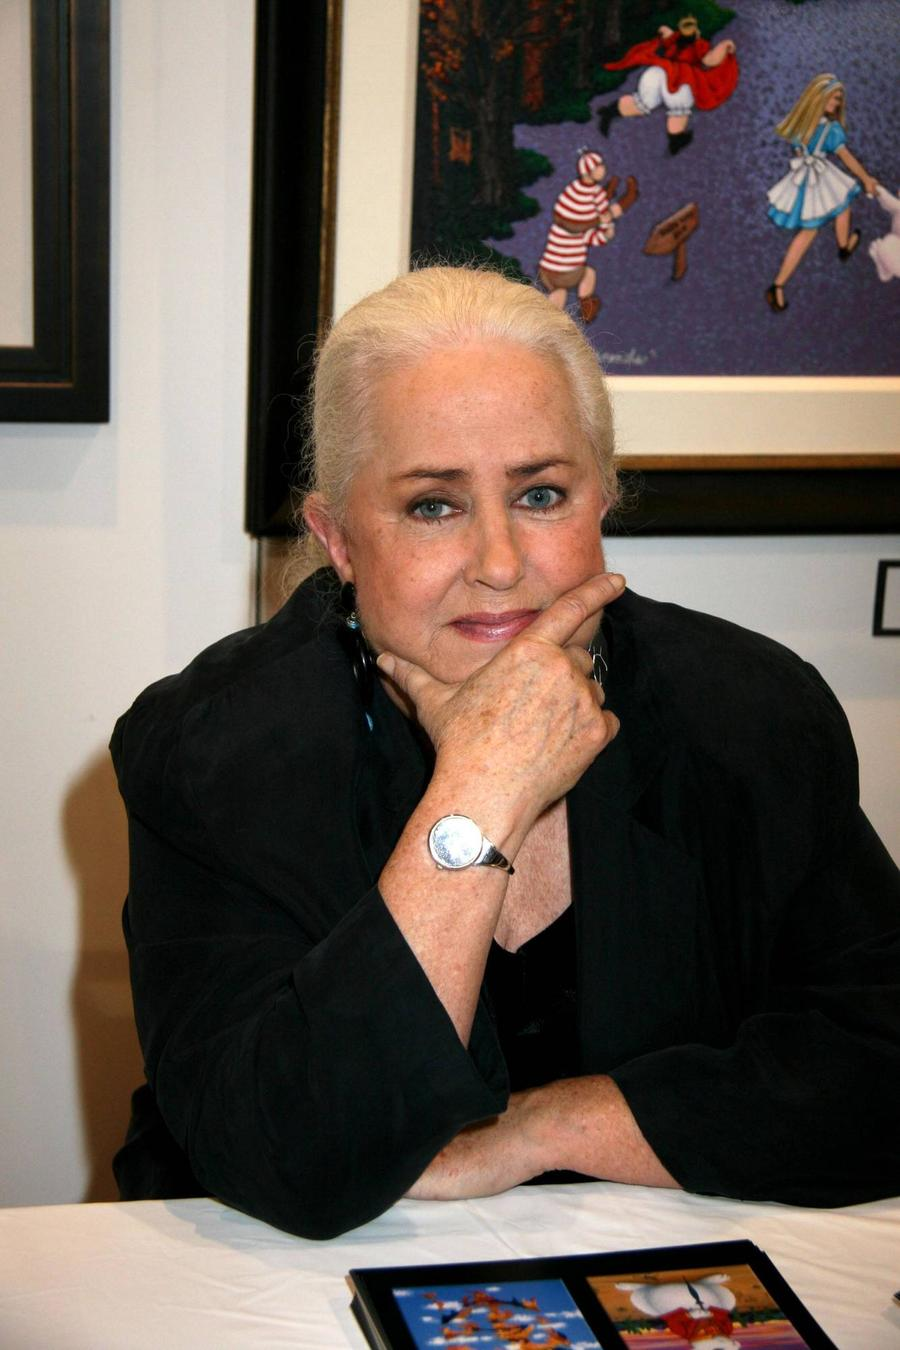 Grace Slick Donating Chick-fil-a Ad Money To Gay Rights Group